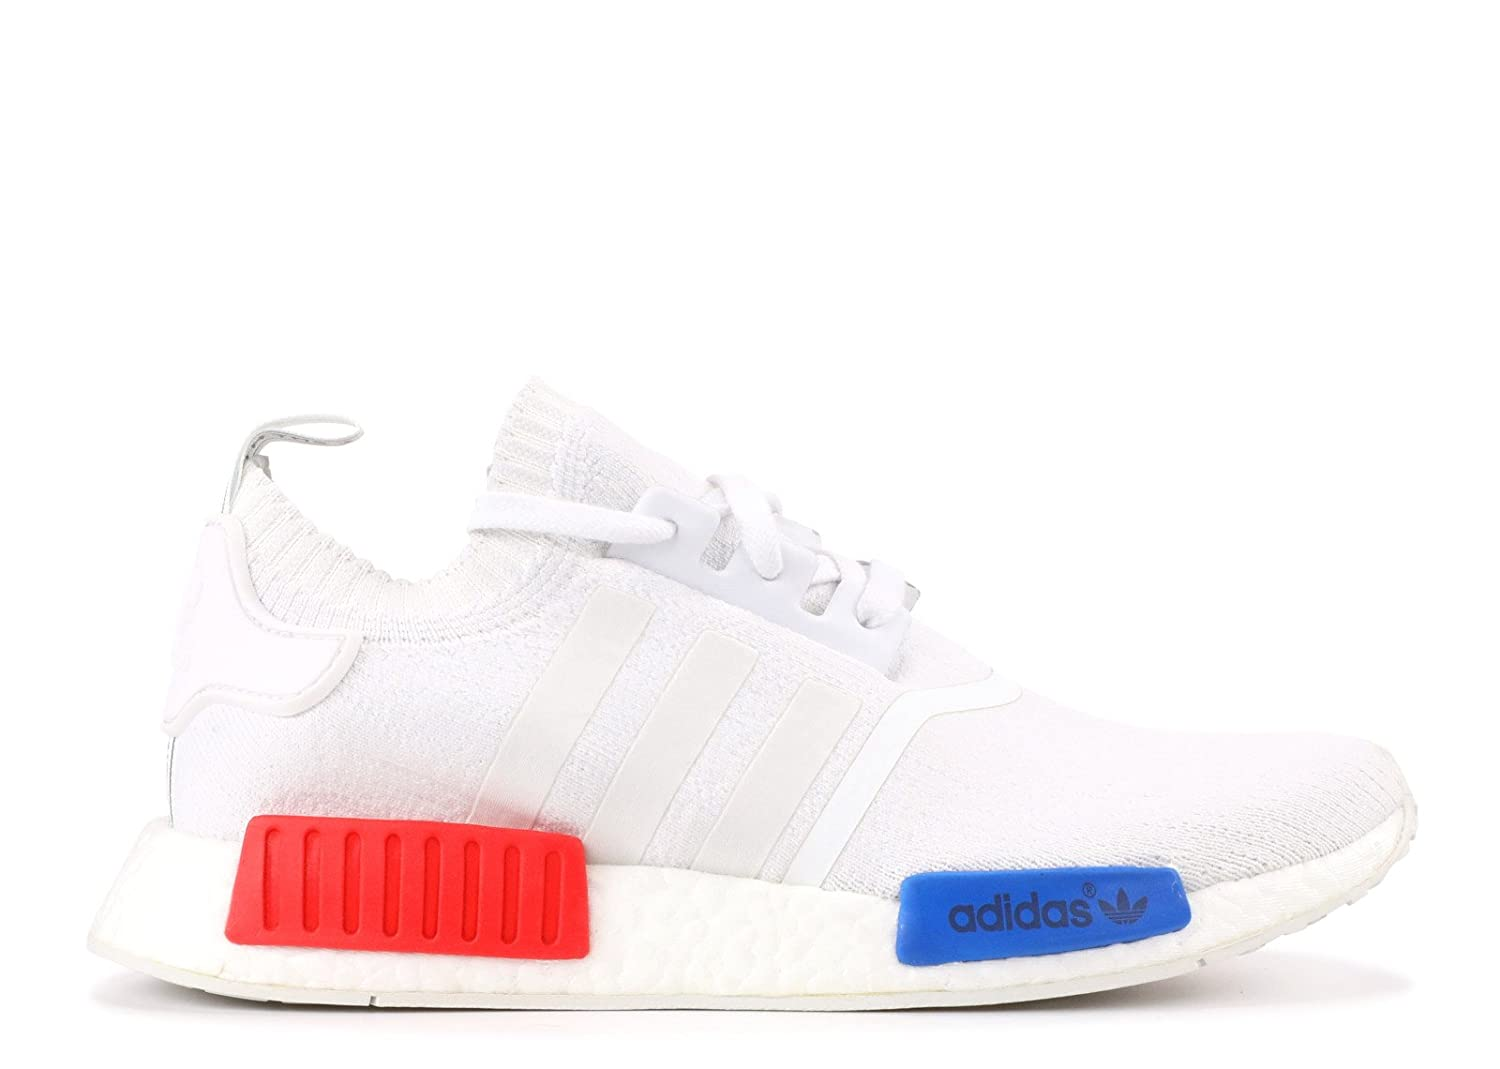 cheap for discount 07e24 f0150 Amazon.com   adidas NMD Runner Pk - S79482 - Size 11 White, Red, Blue    Athletic